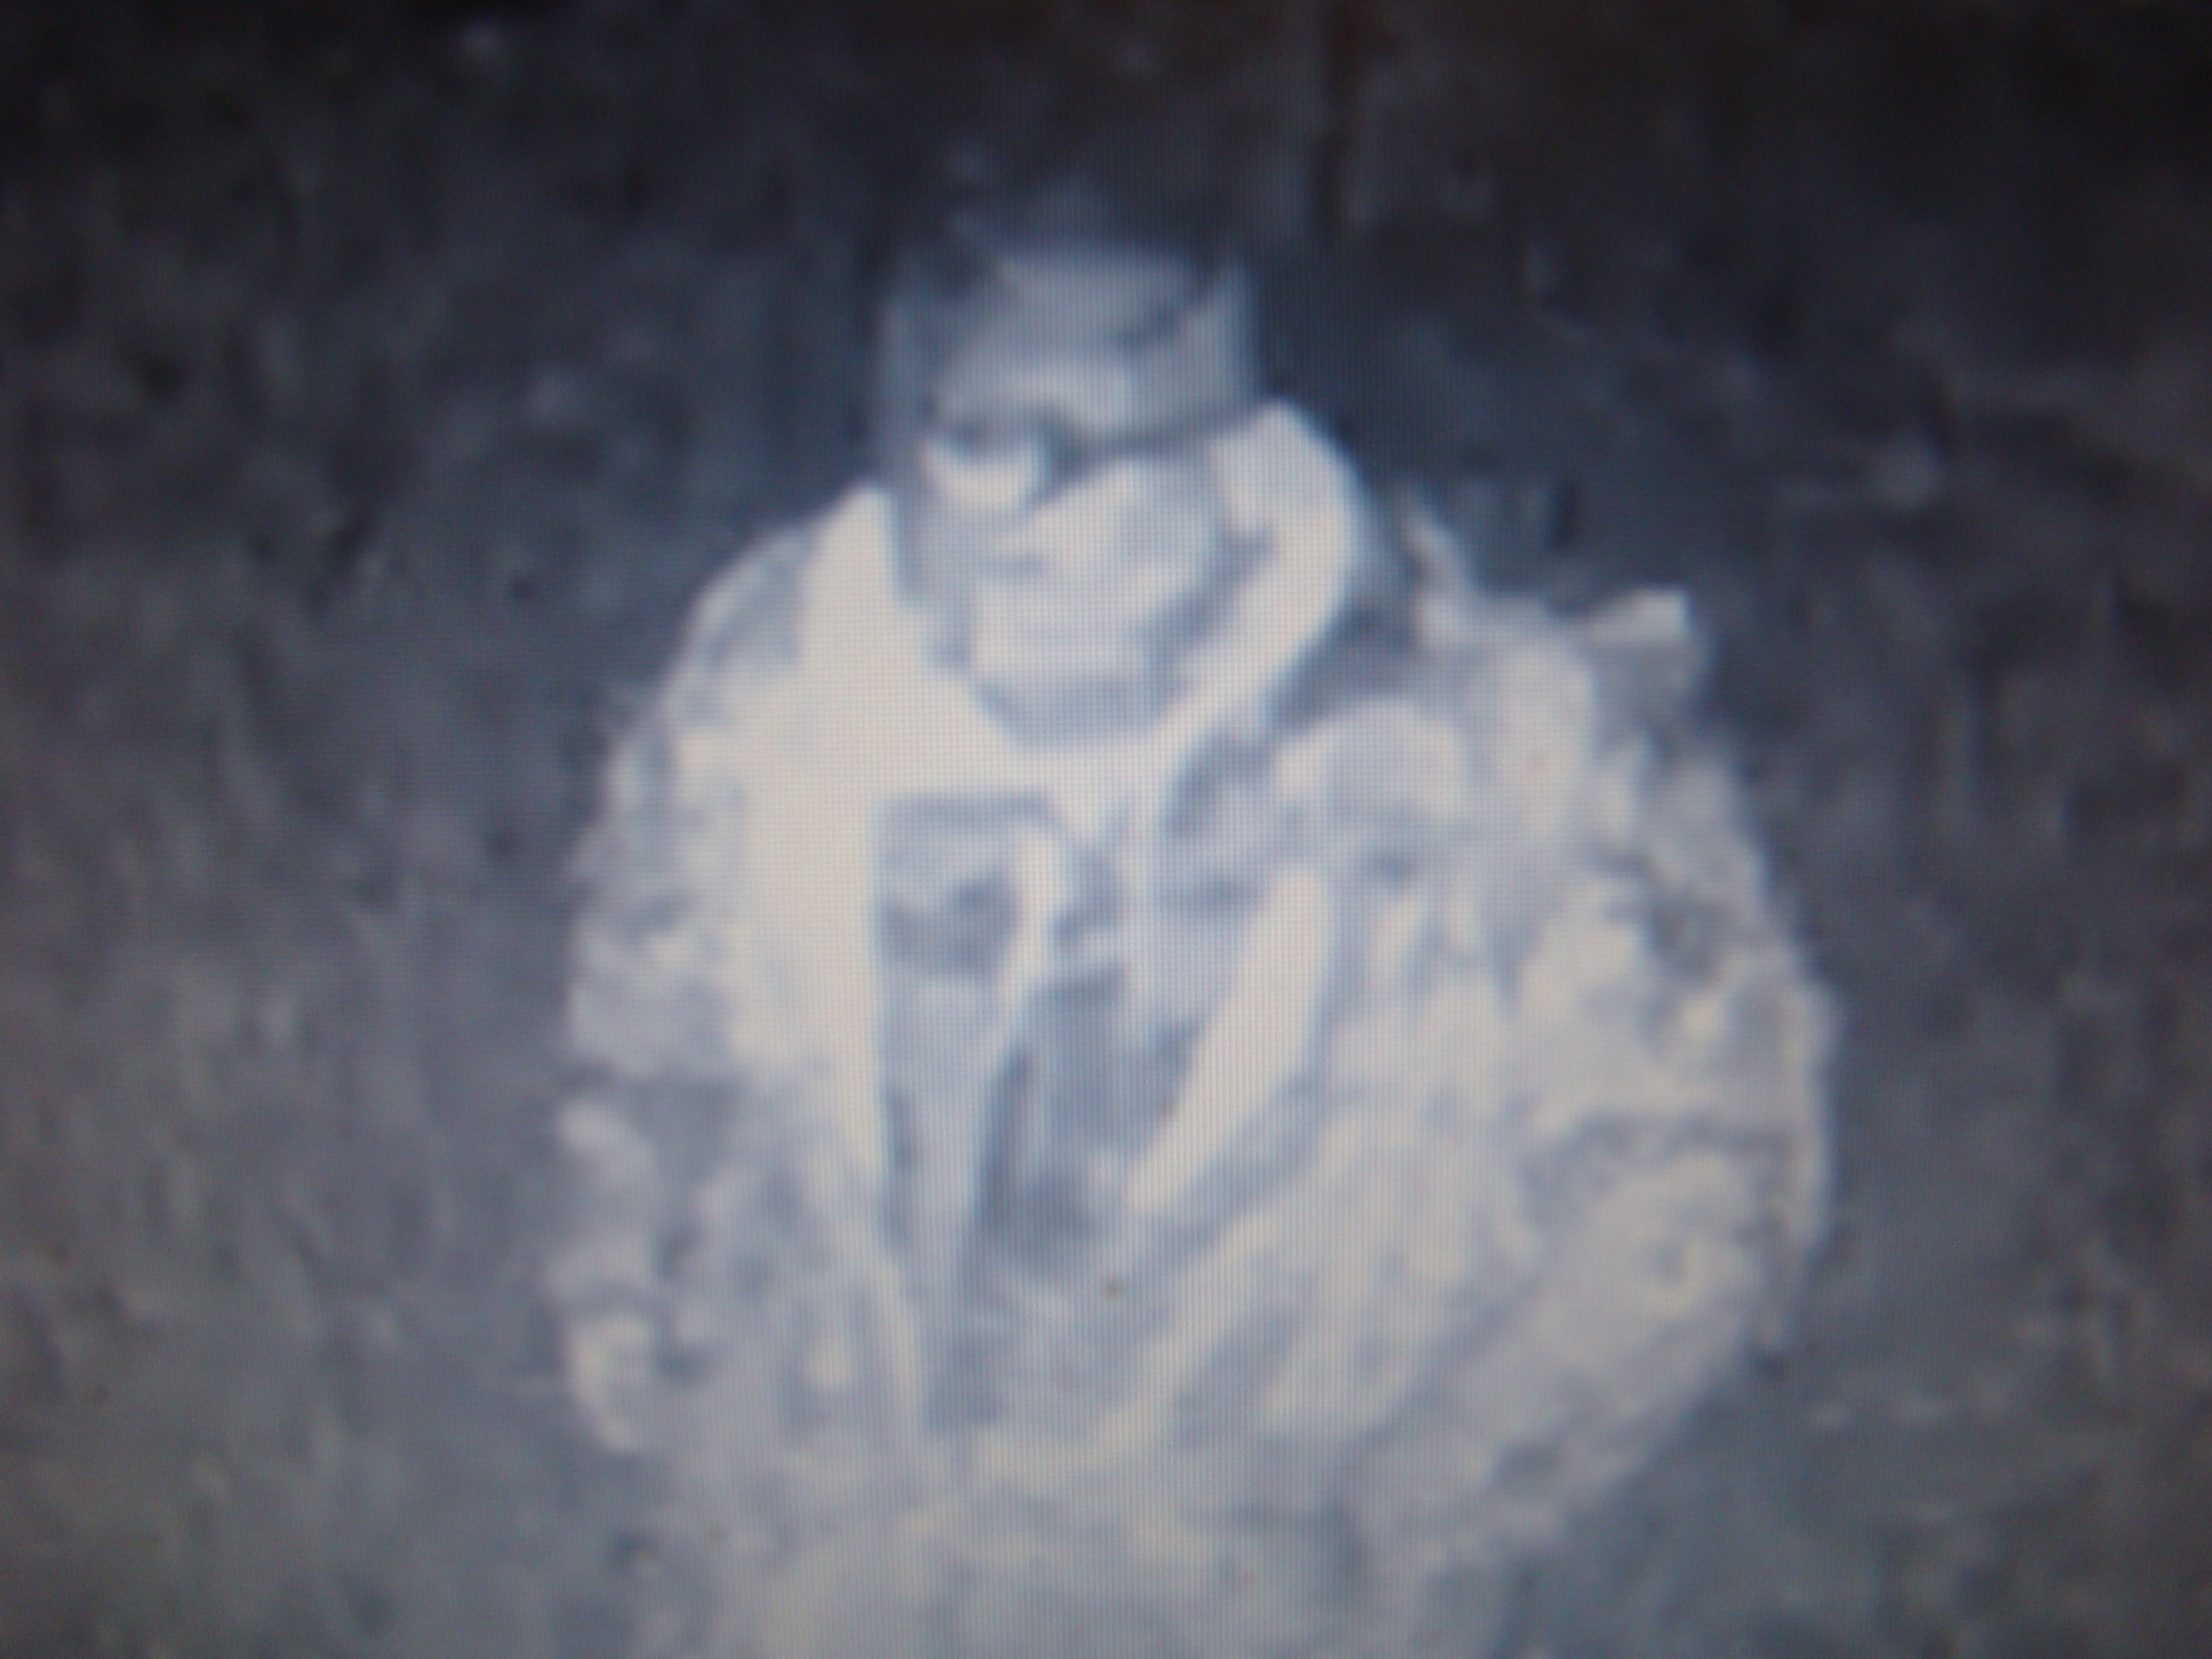 Mason County Sheriff's Office seeking tips to ID burglary suspect